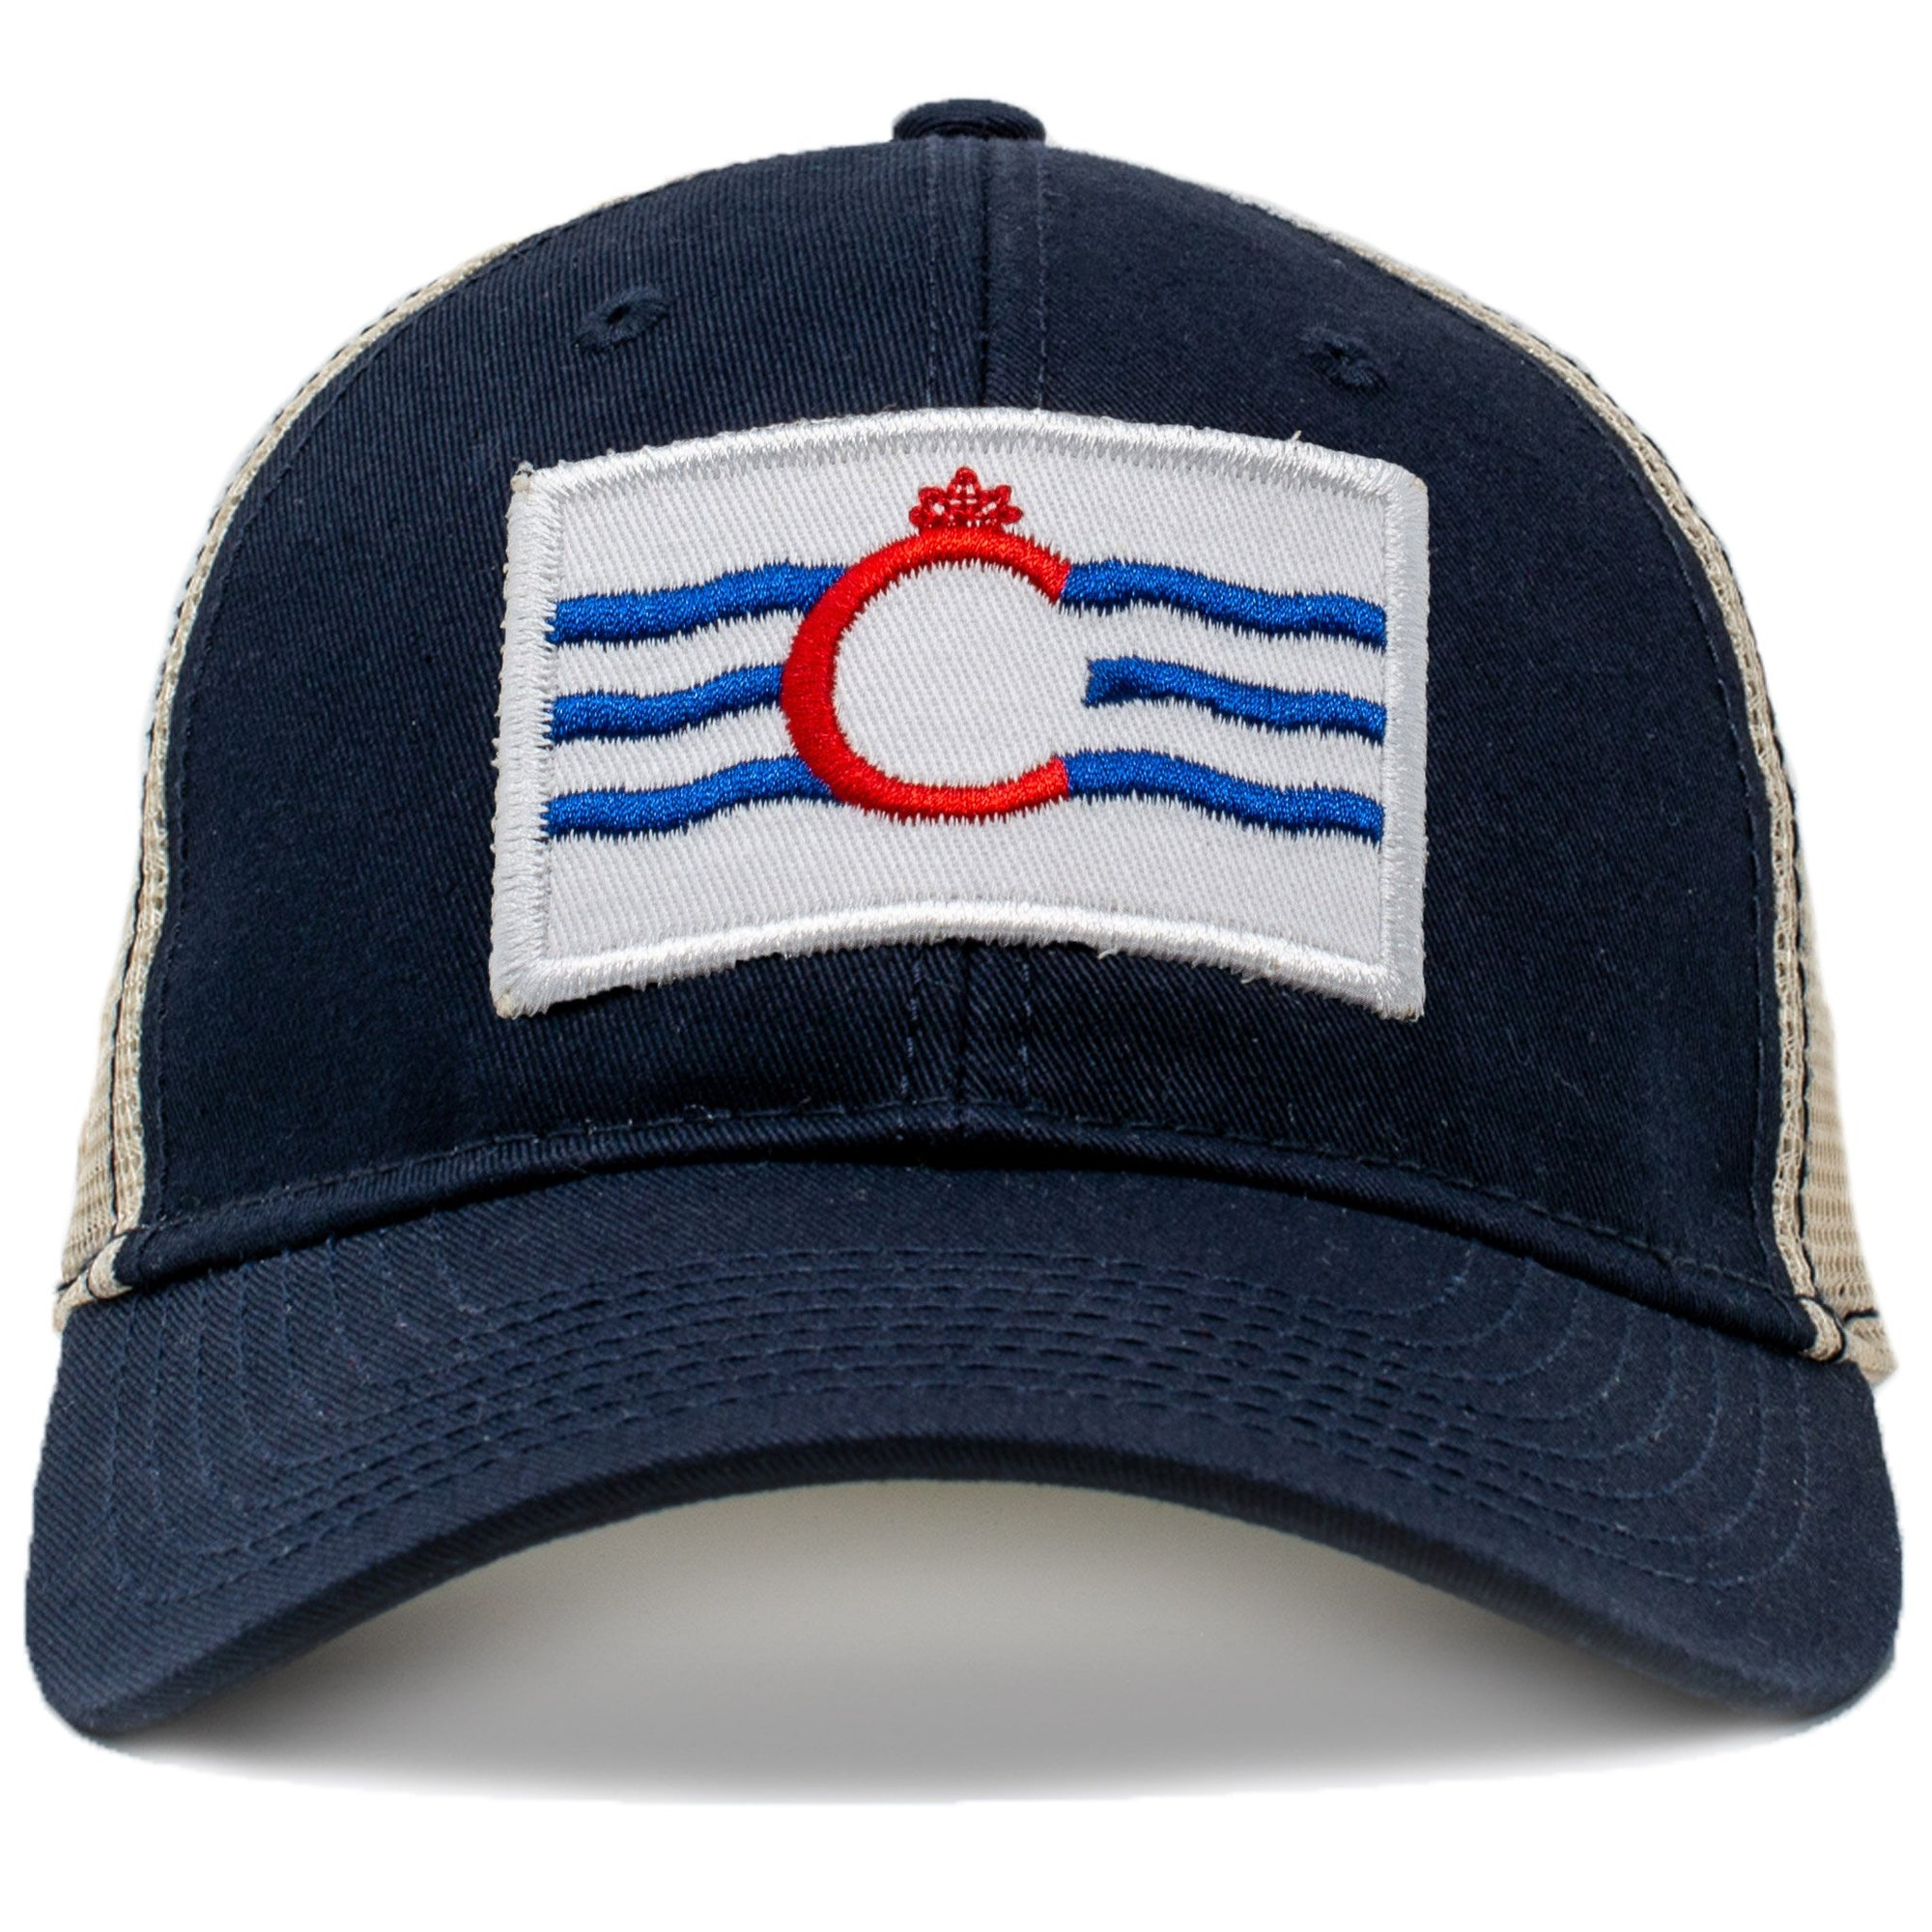 Cincinnati flag mesh hat